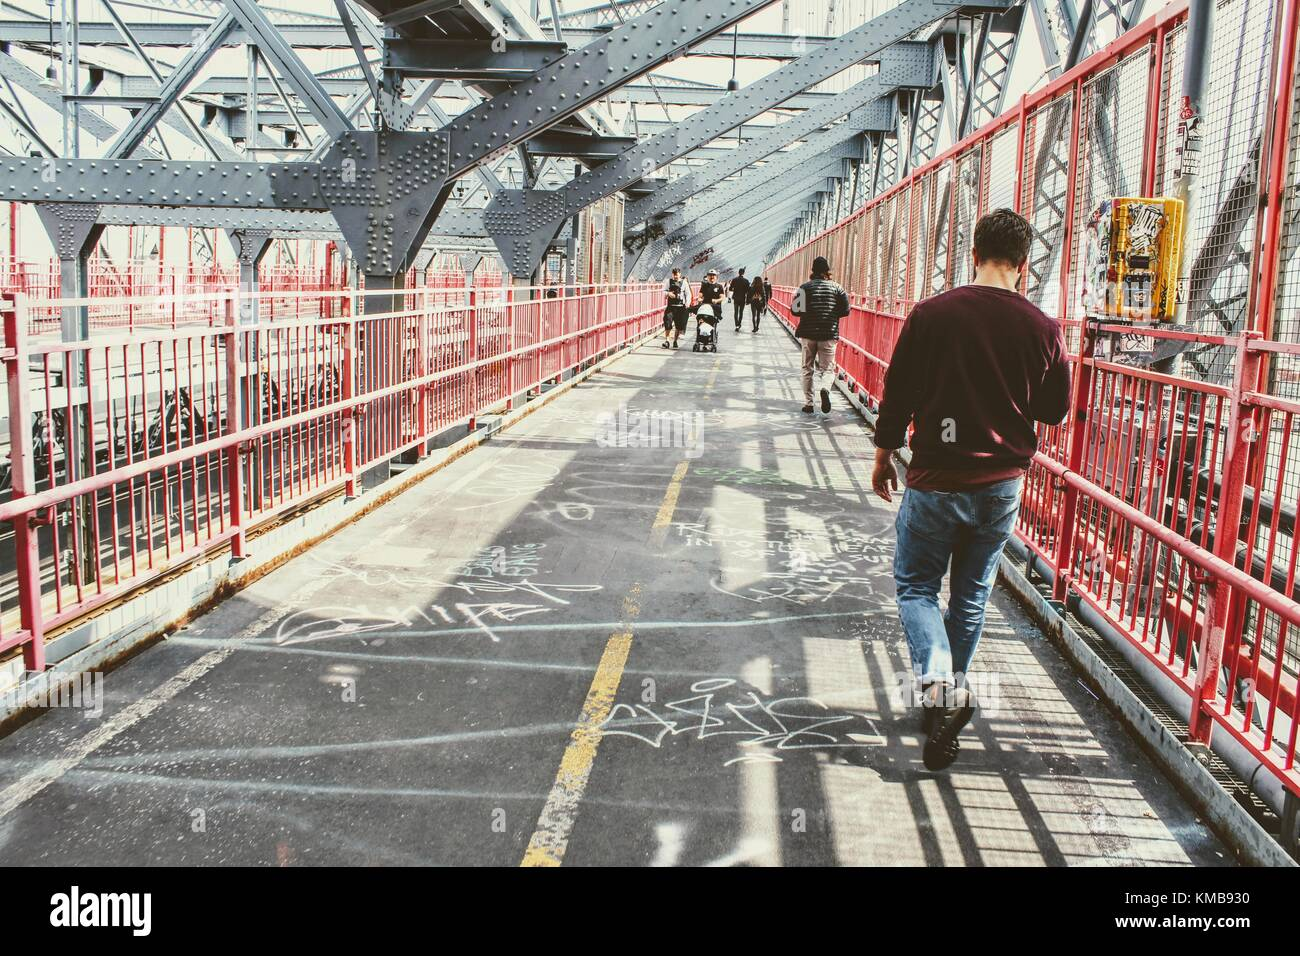 New York, April 2017. Sunday walk on Williamsburg bridge - Stock Image